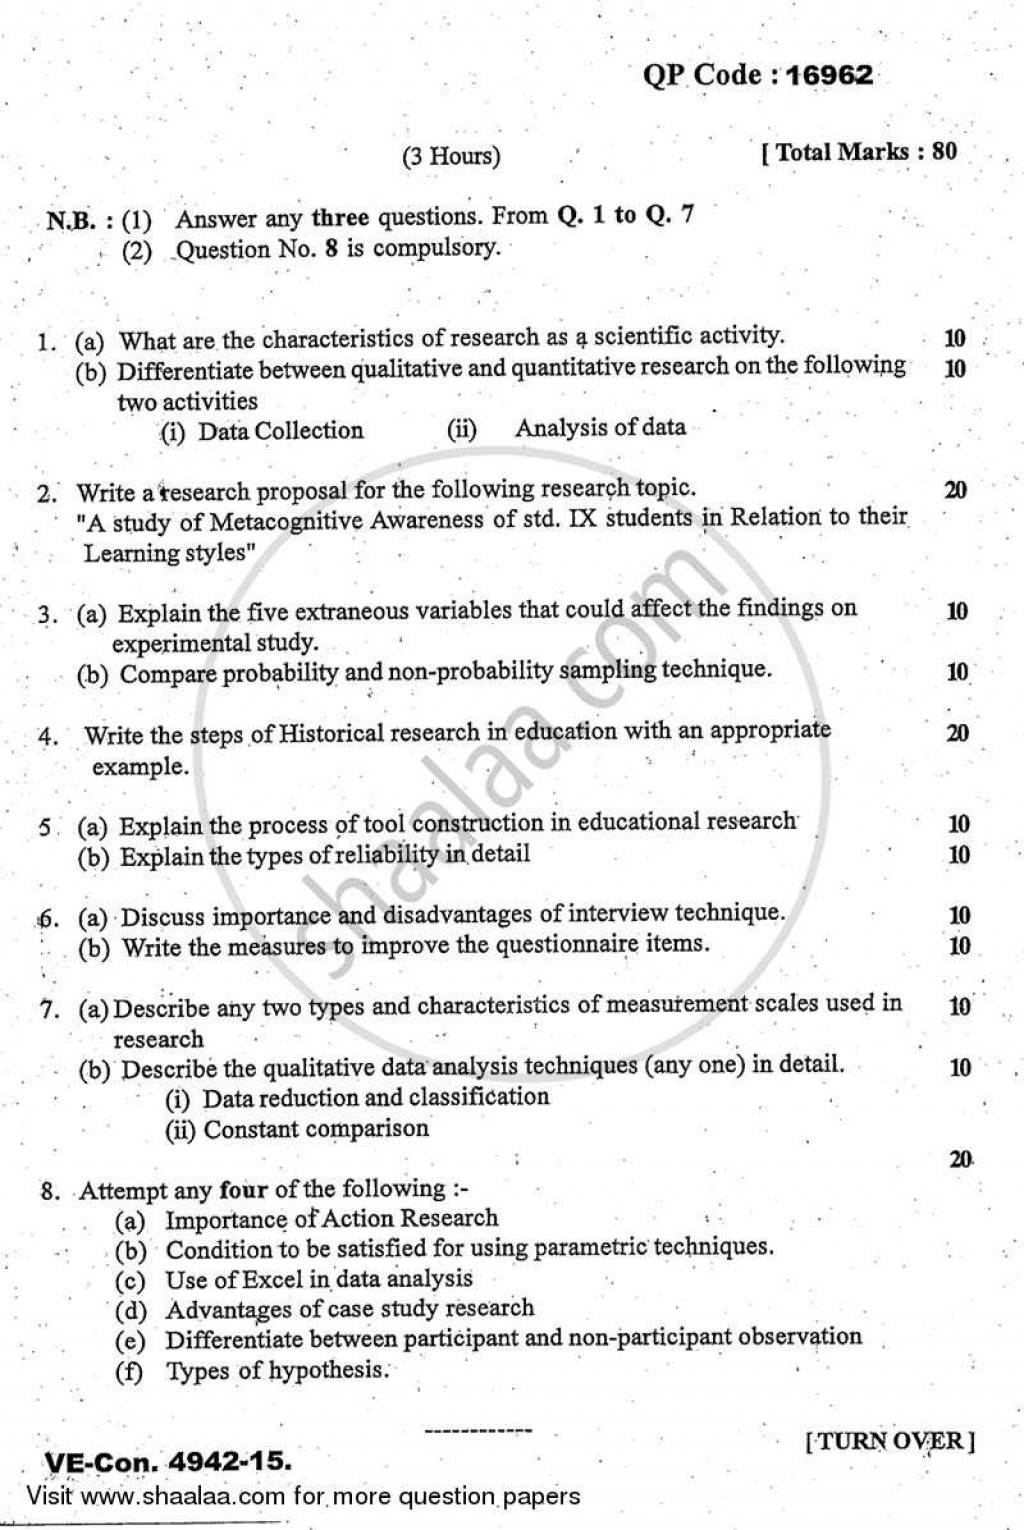 006 Educational Research Past Exams University Of Mumbai Master Ma Methodology Education Yearly Pattern Part 2015 2b713b81467684597a5dc66013a64e0a3 Amazing Exam Papers Large